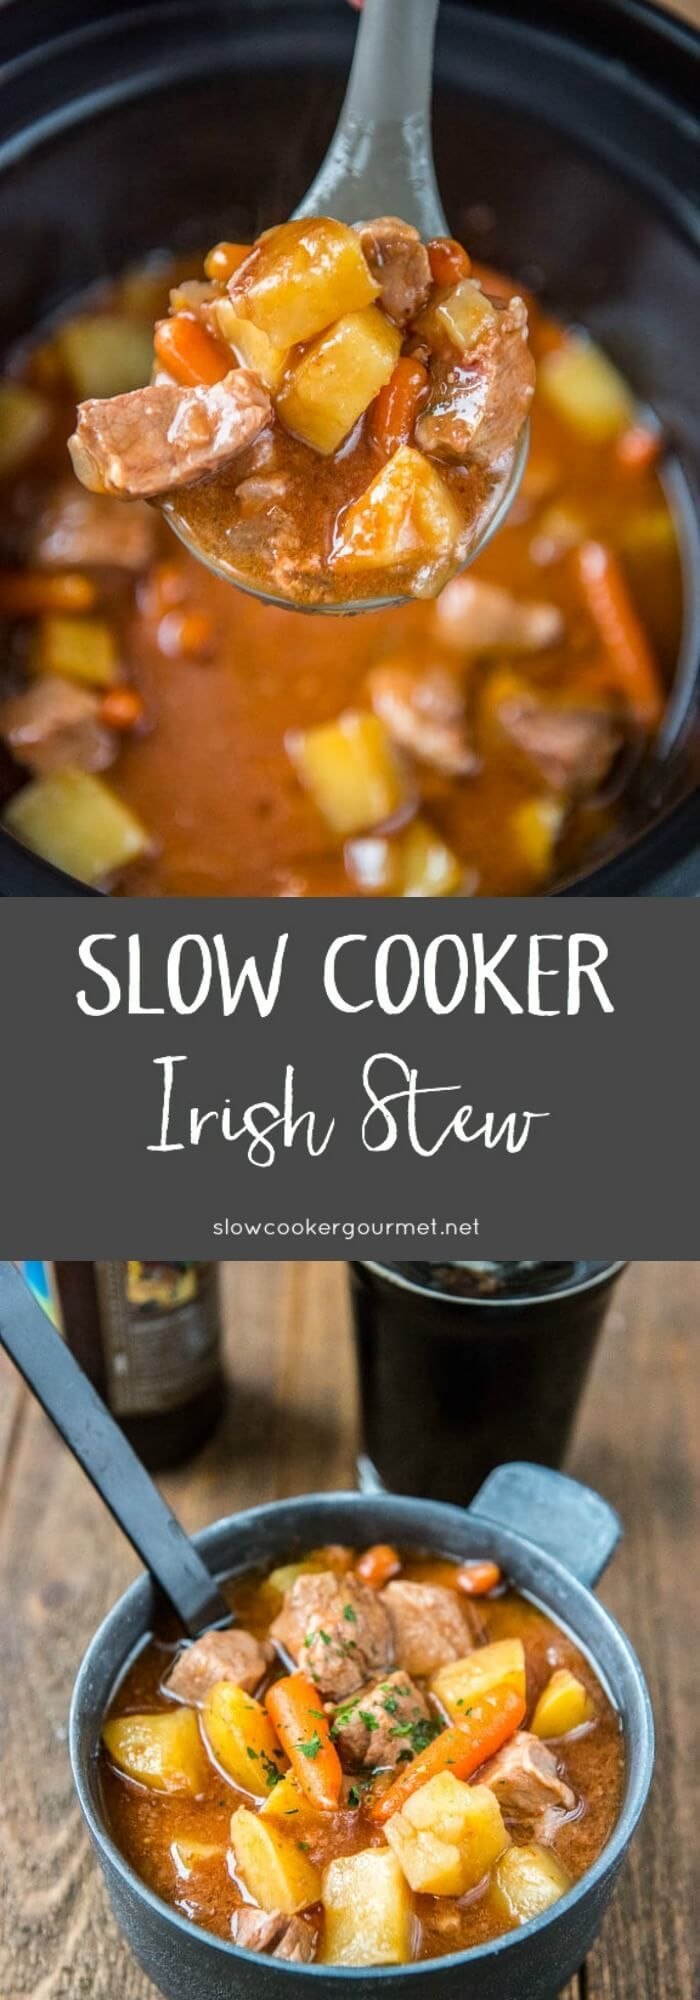 The perfect simple and hearty meal! Slow Cooker Irish Stew is loaded with tender pork shoulder, veggies and your favorite stout beer.